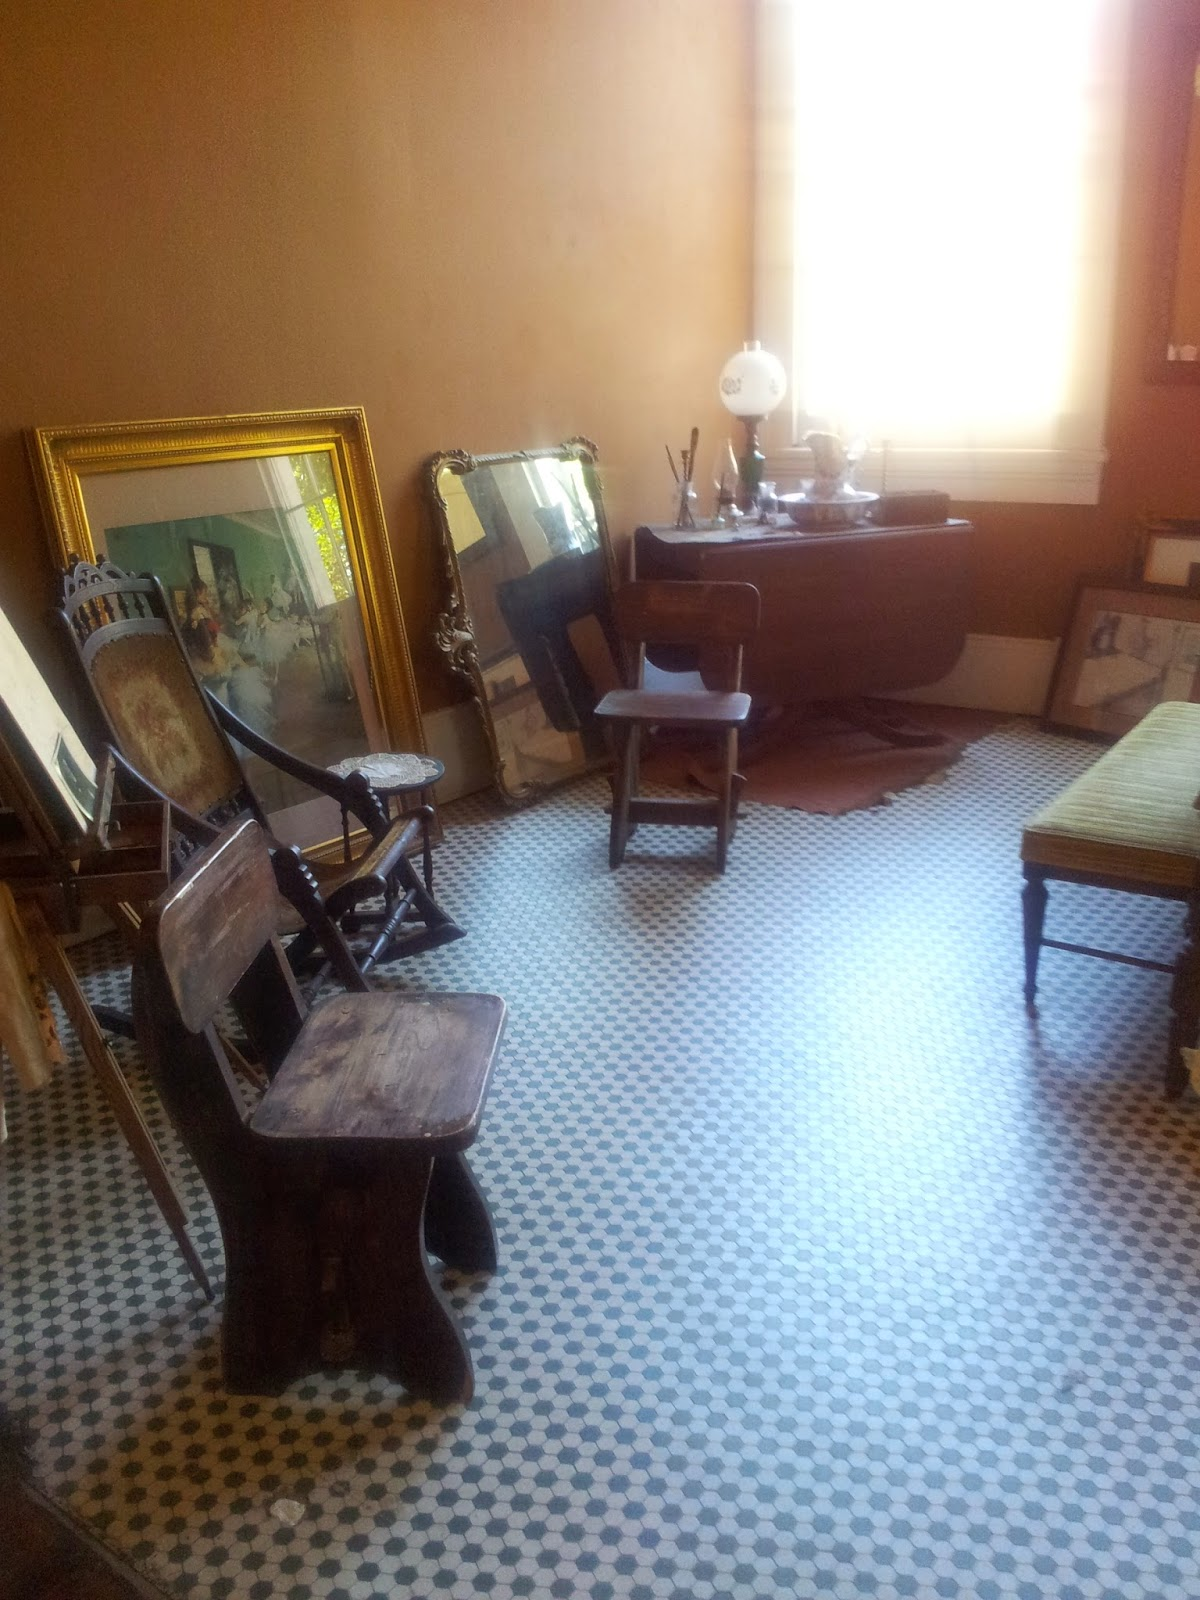 Edgar Degas' bedroom - Degas House, New Orleans